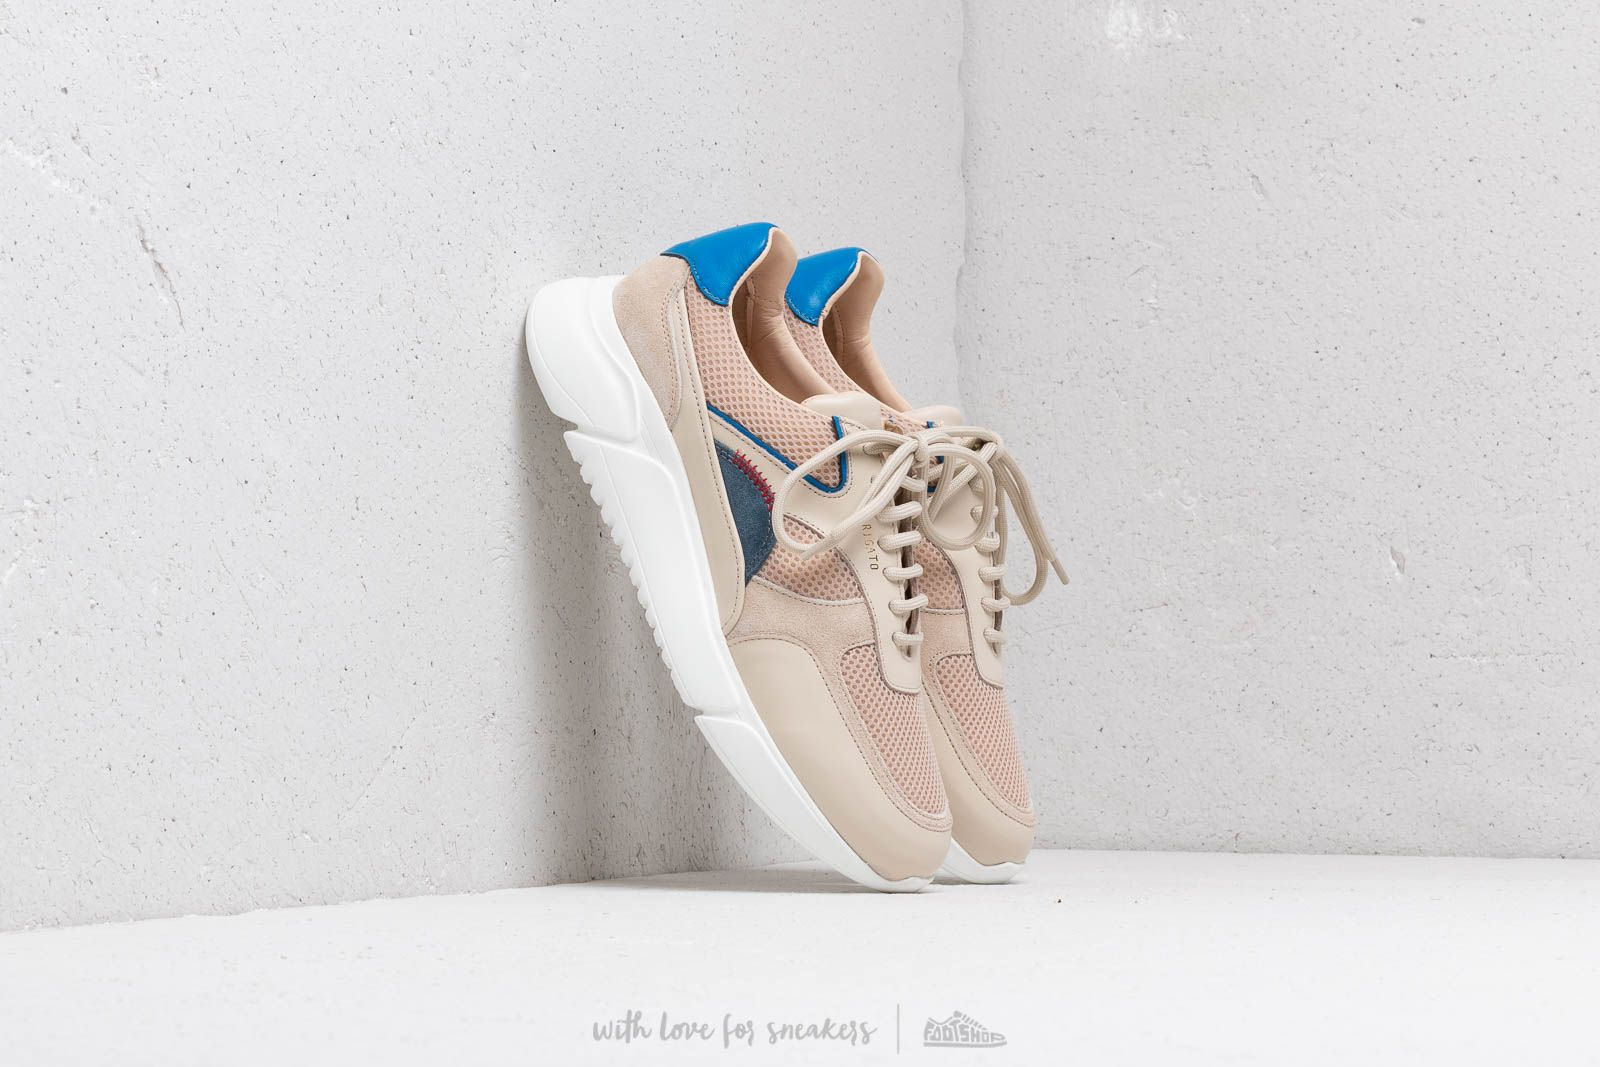 AXEL ARIGATO Genesis Sneaker Multicolored Leather Beige/ Grey/ Blue